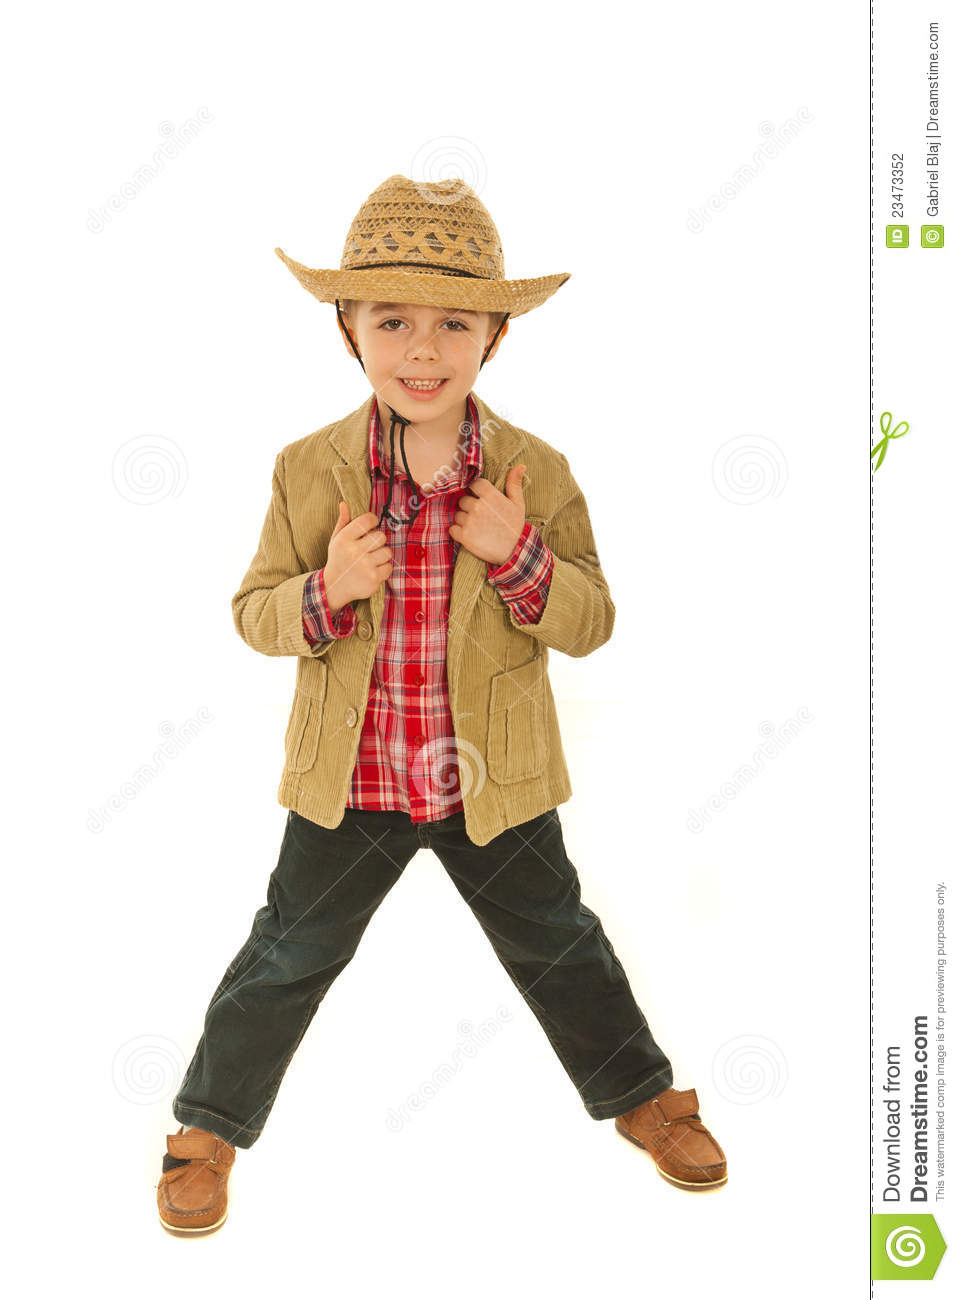 Fashionable Child Model Boy Stock Photography - Image: 23473352